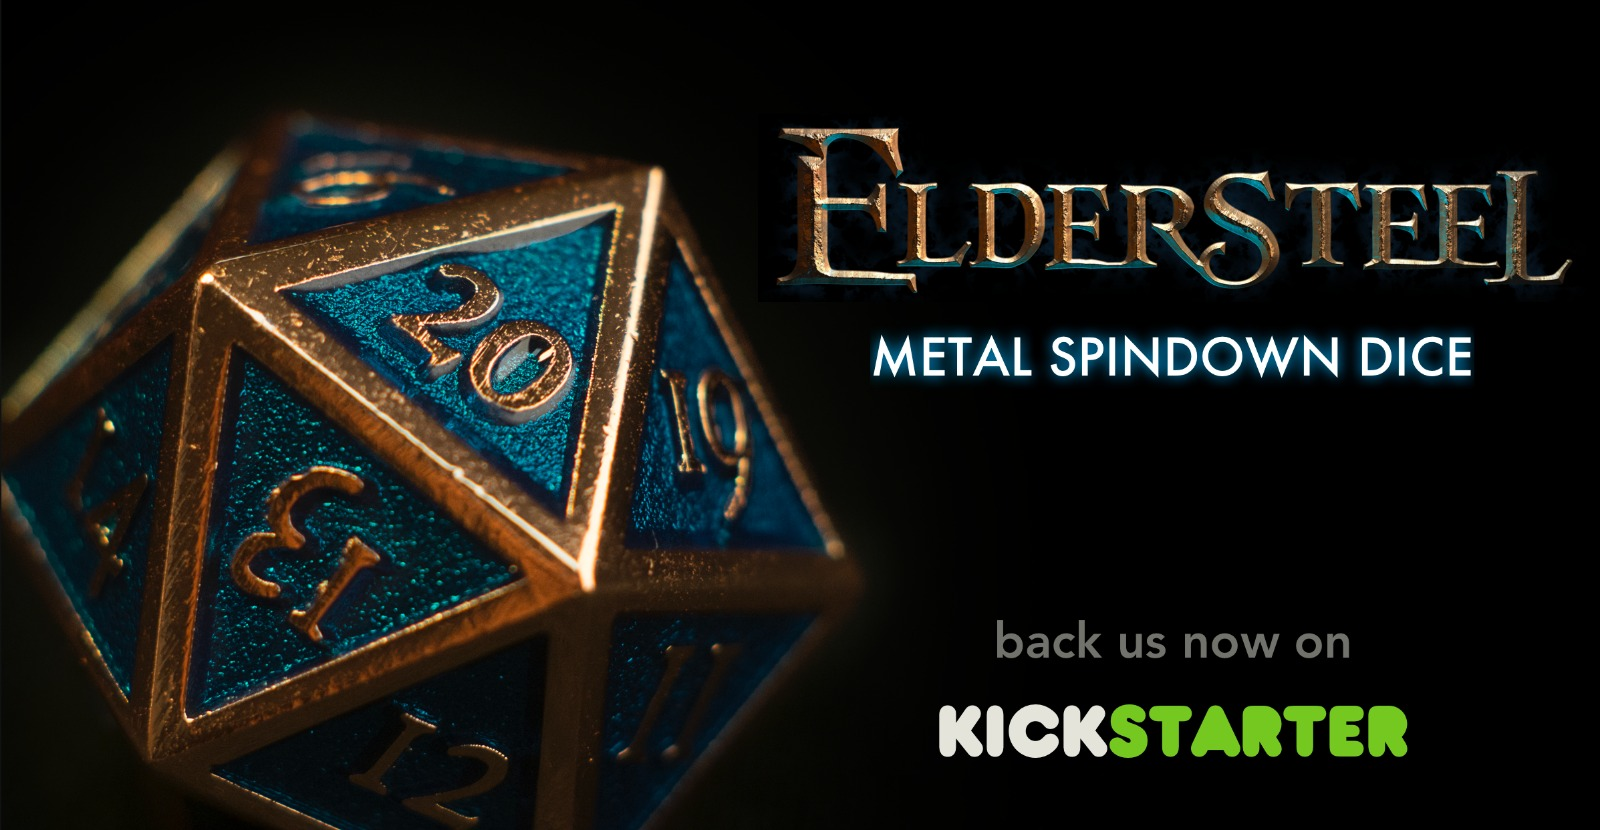 Back Eldersteel on Kickstarter